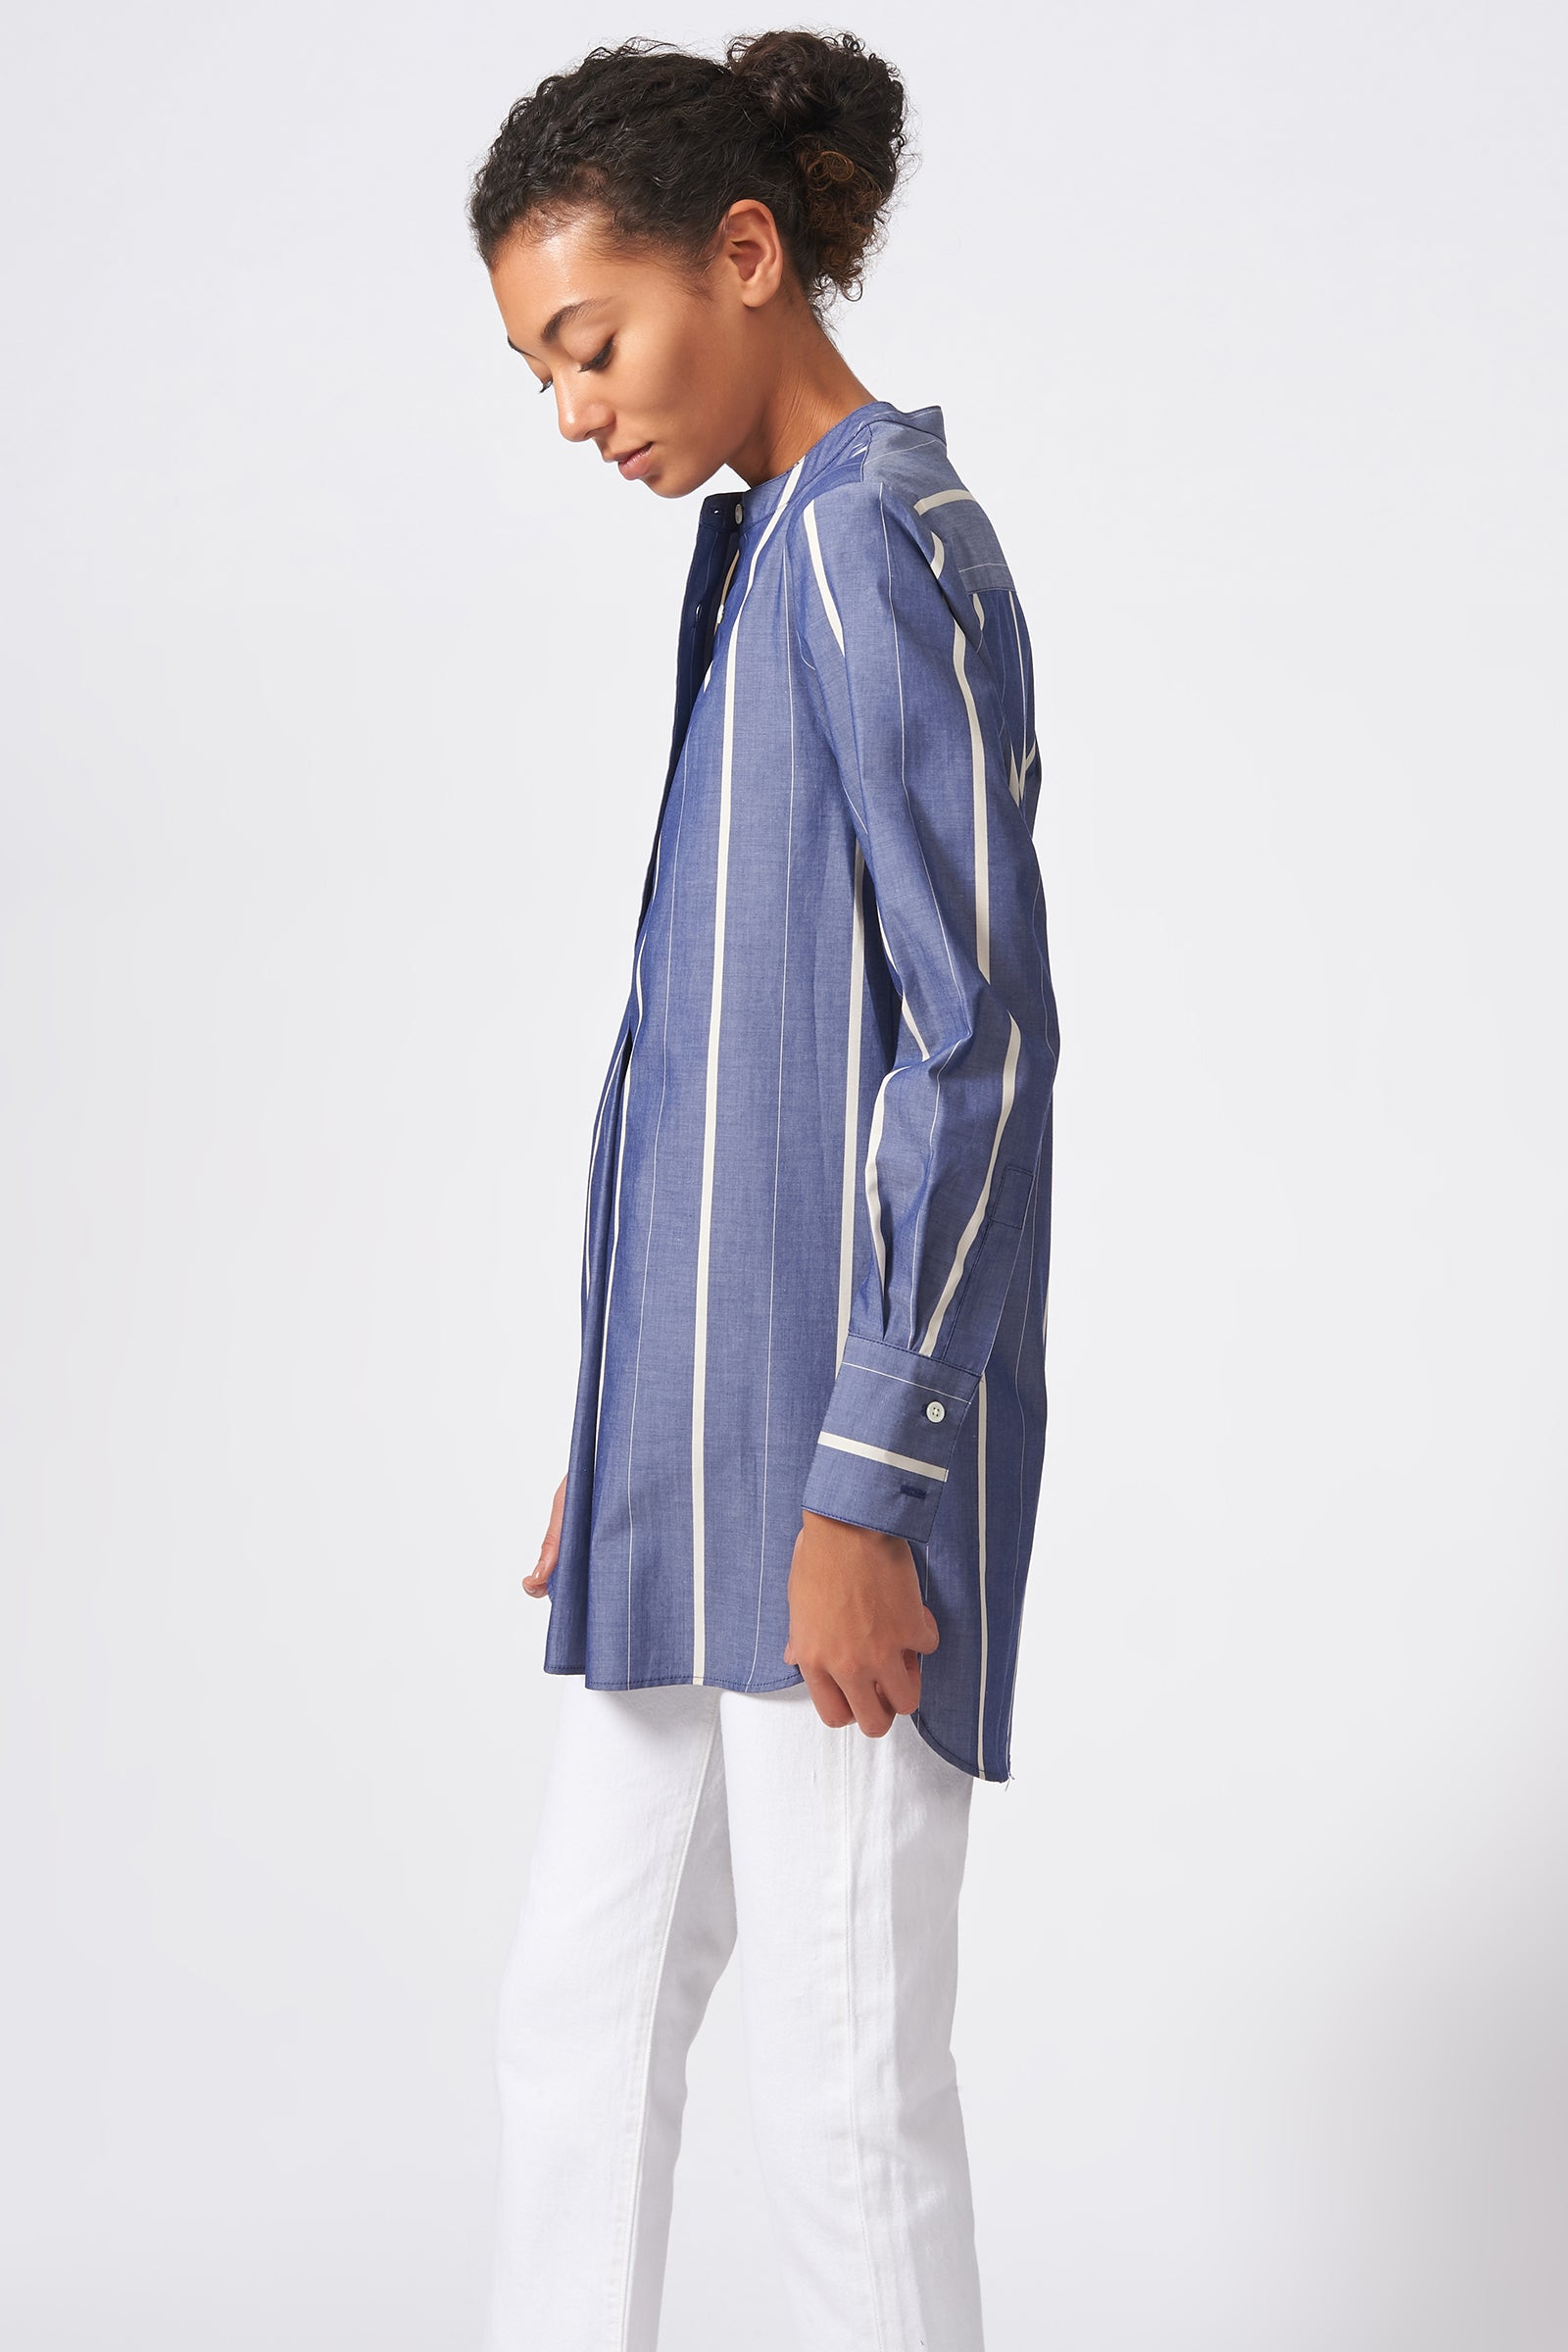 Kal Rieman Placket Front Tunic in Chambray Stripe on Model Side View